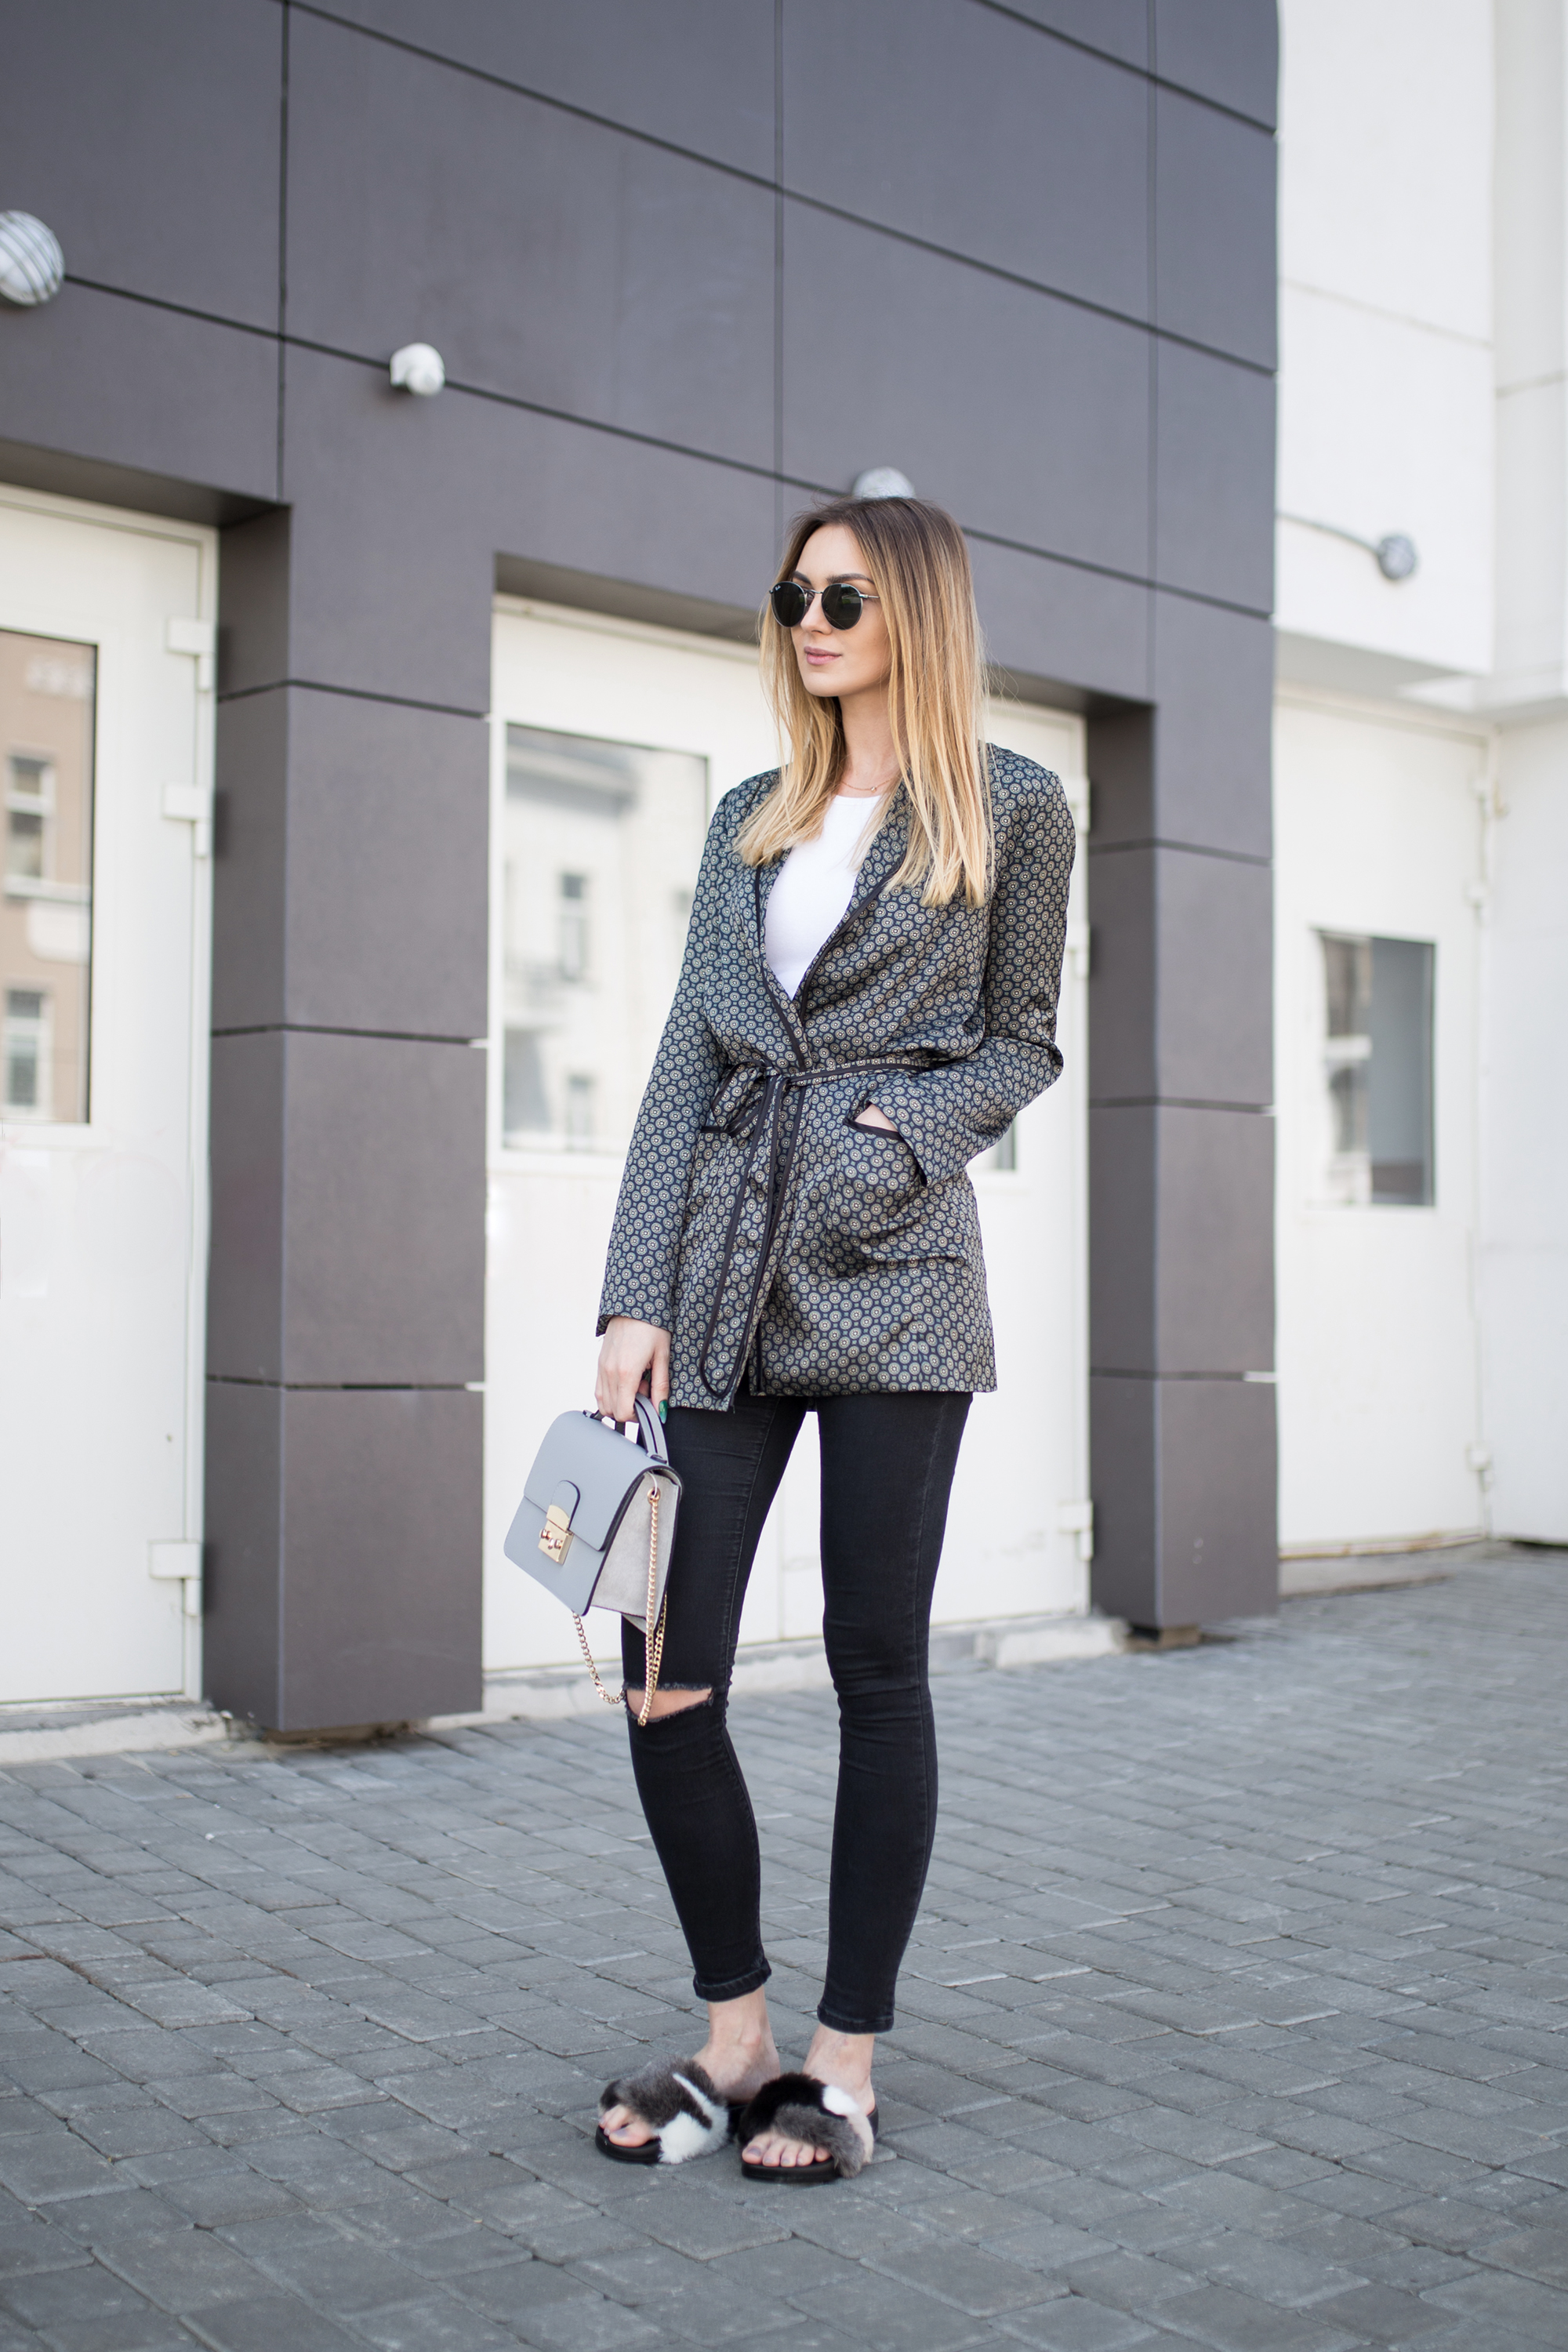 fur-slides-sliders-mules-outfit-street-style